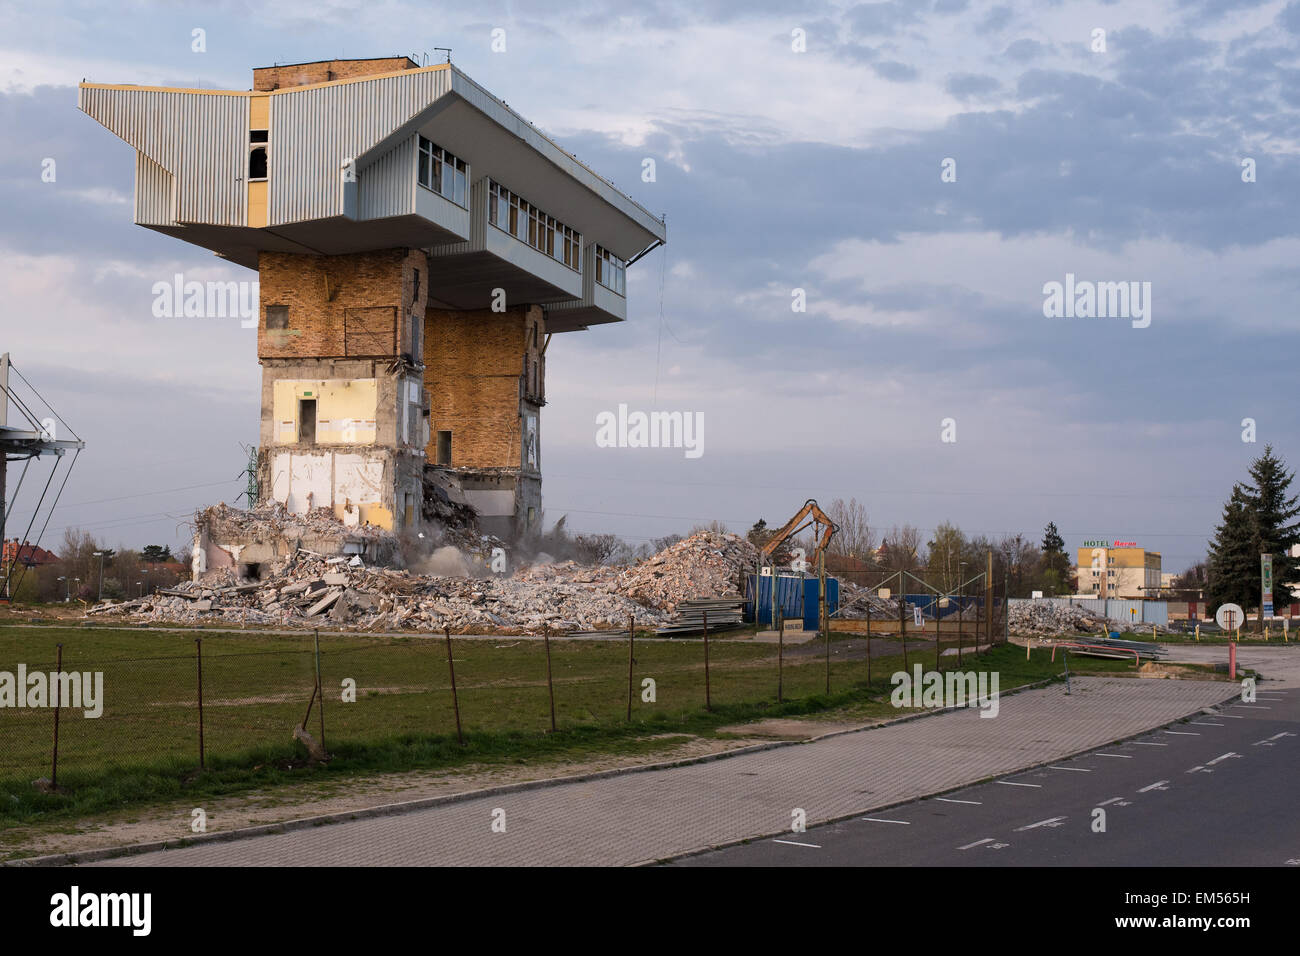 Building Blowing Up : Lubin poland th april blowing up the old